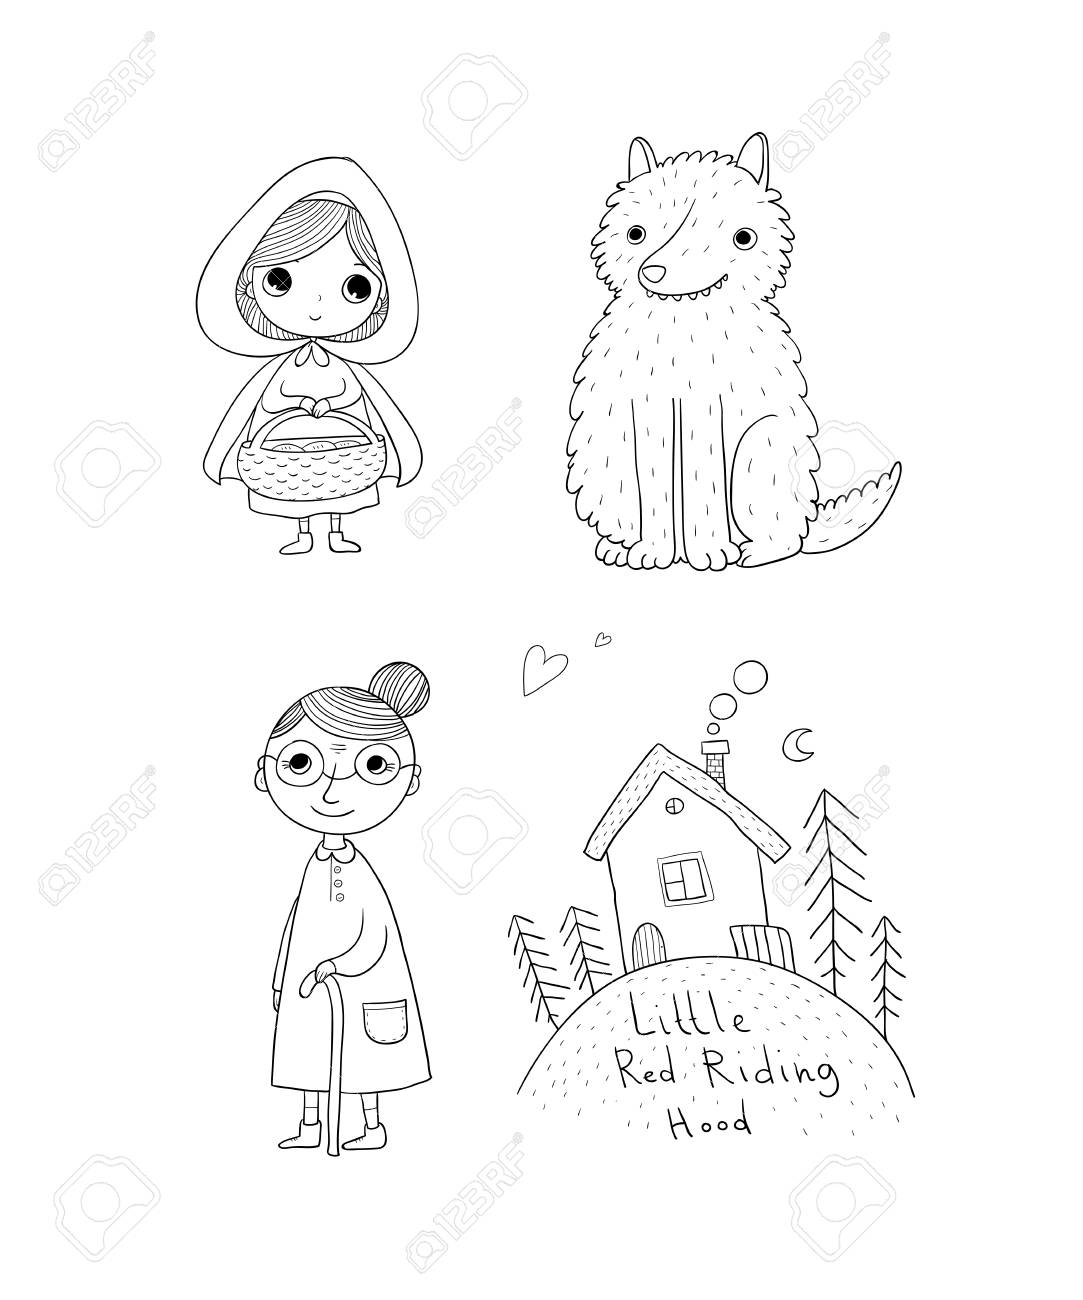 Little Red Riding Hood fairy tale. Little cute girl, wolf, grandmother and house. Hand drawing isolated objects on white background. Vector illustration. - 104169467